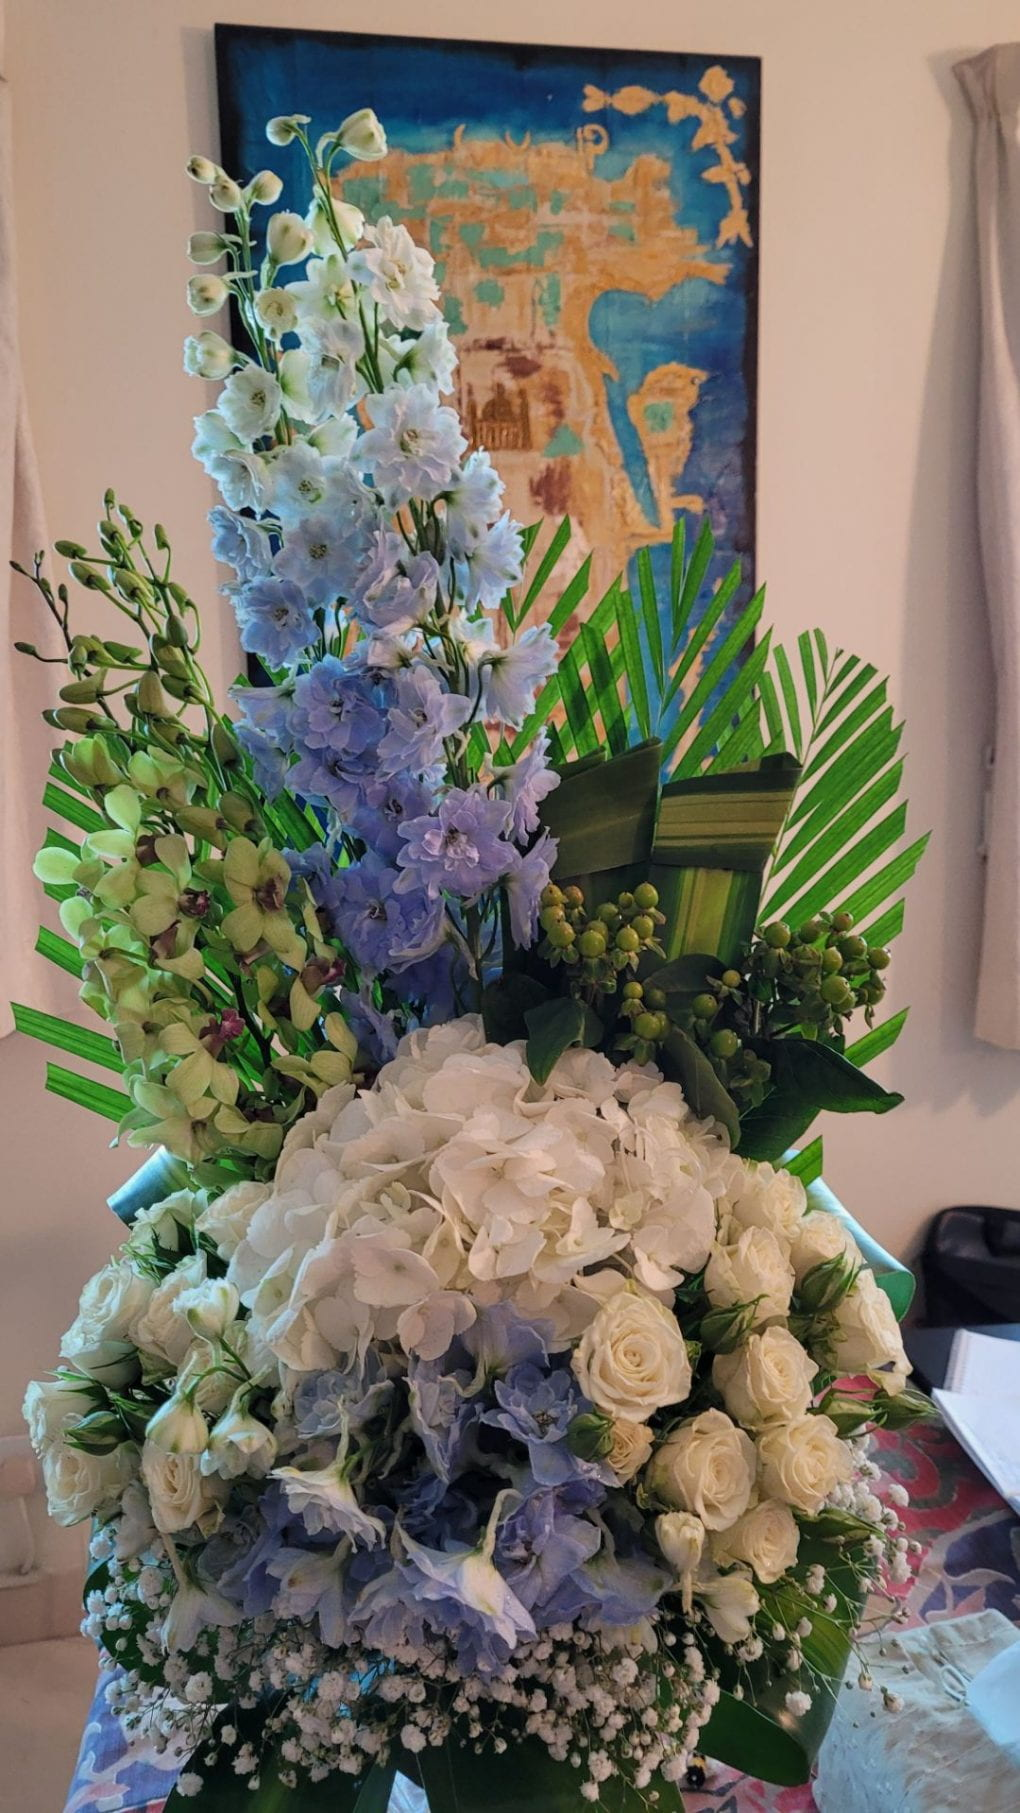 bouquet of flowers in a vase with a painted map of Bahrain behind them